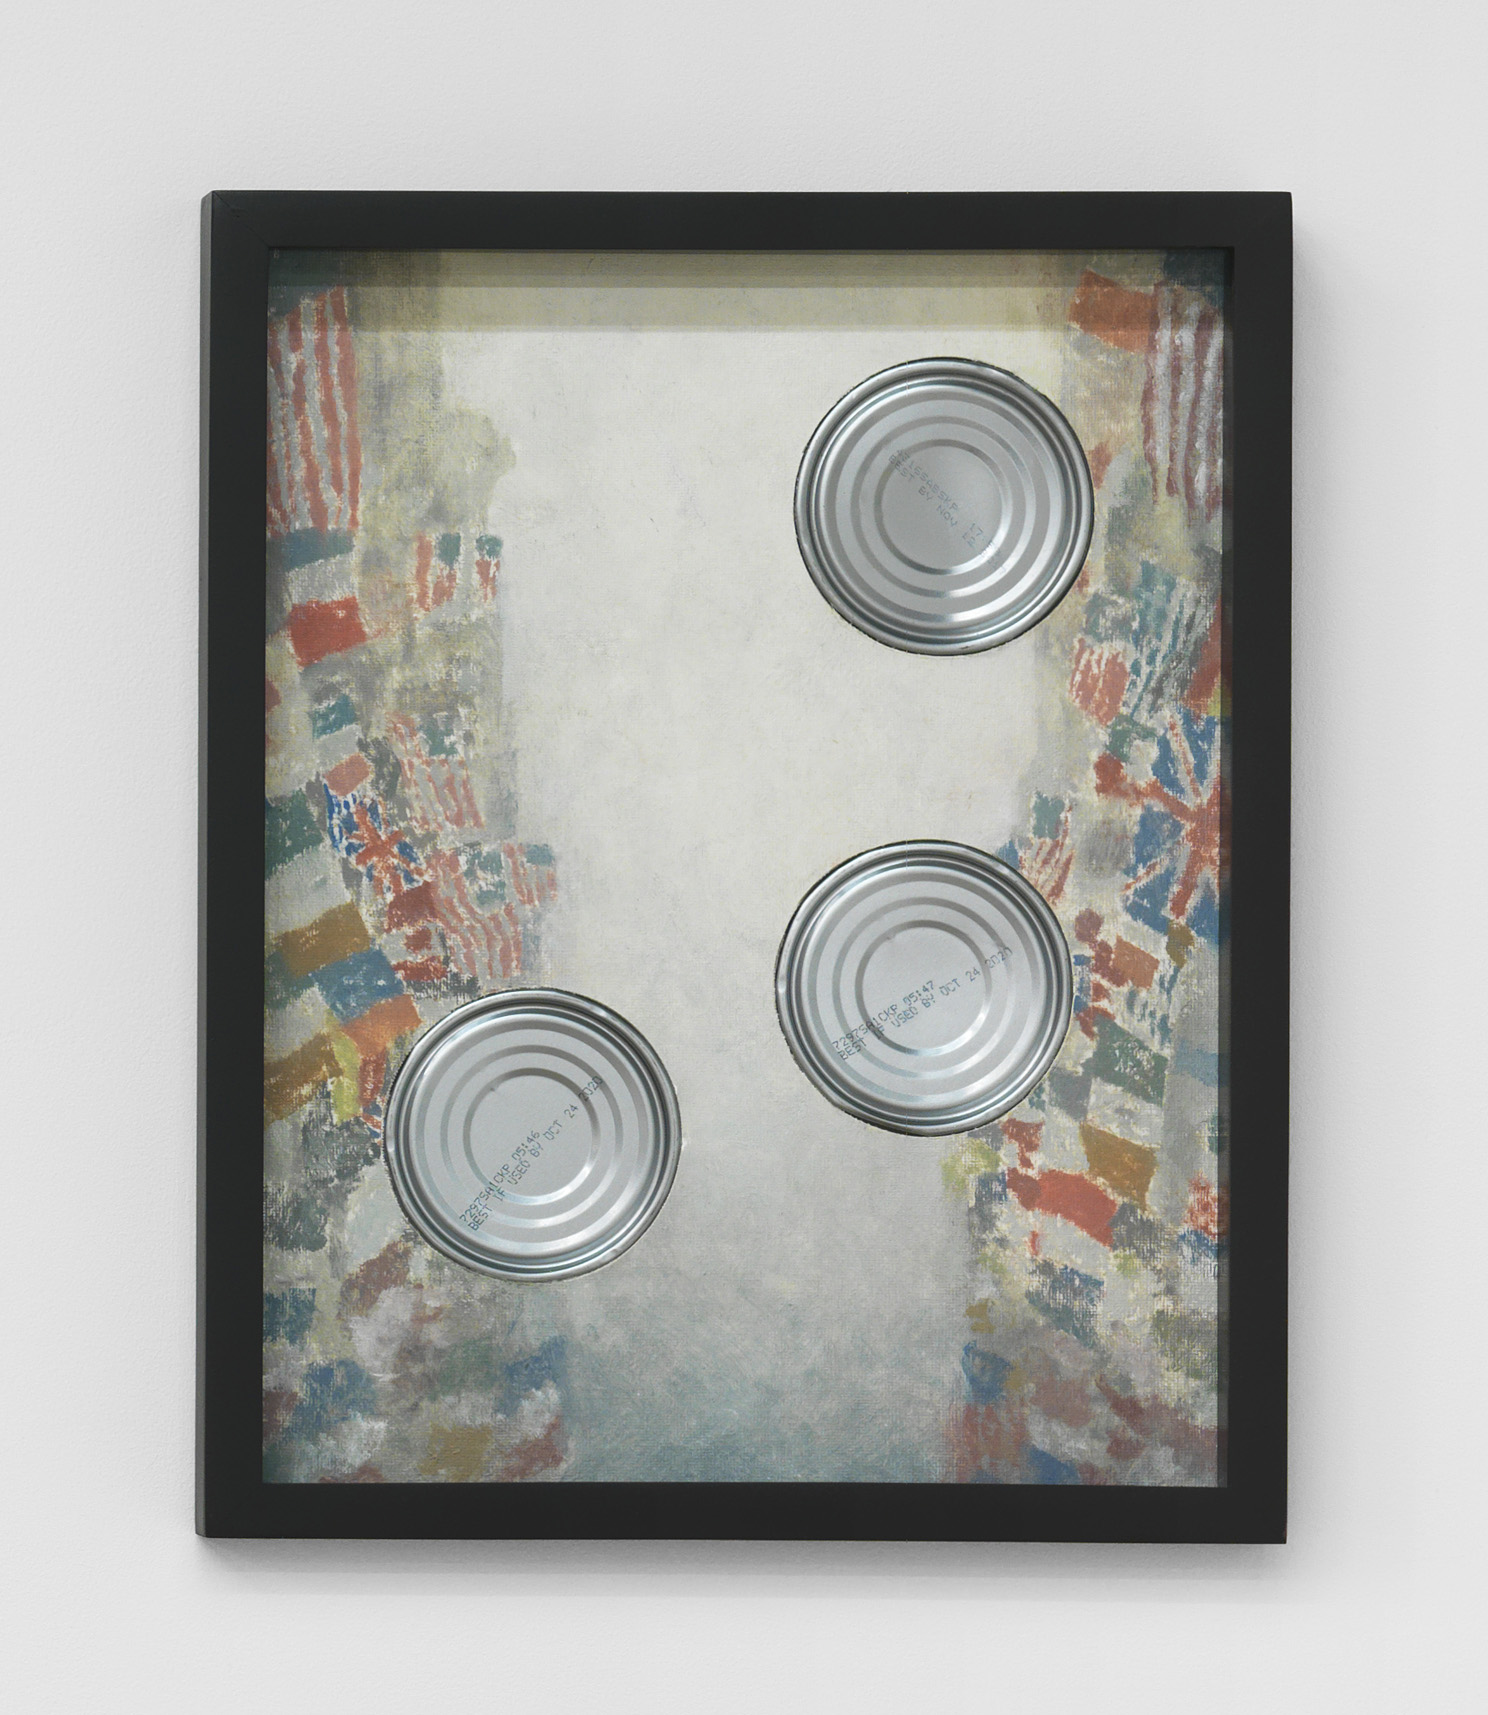 Alex Kwartler, Celebration! (After Childe Hassam), 2018, oil on canvas board, aluminum can, 14h x 11w in.